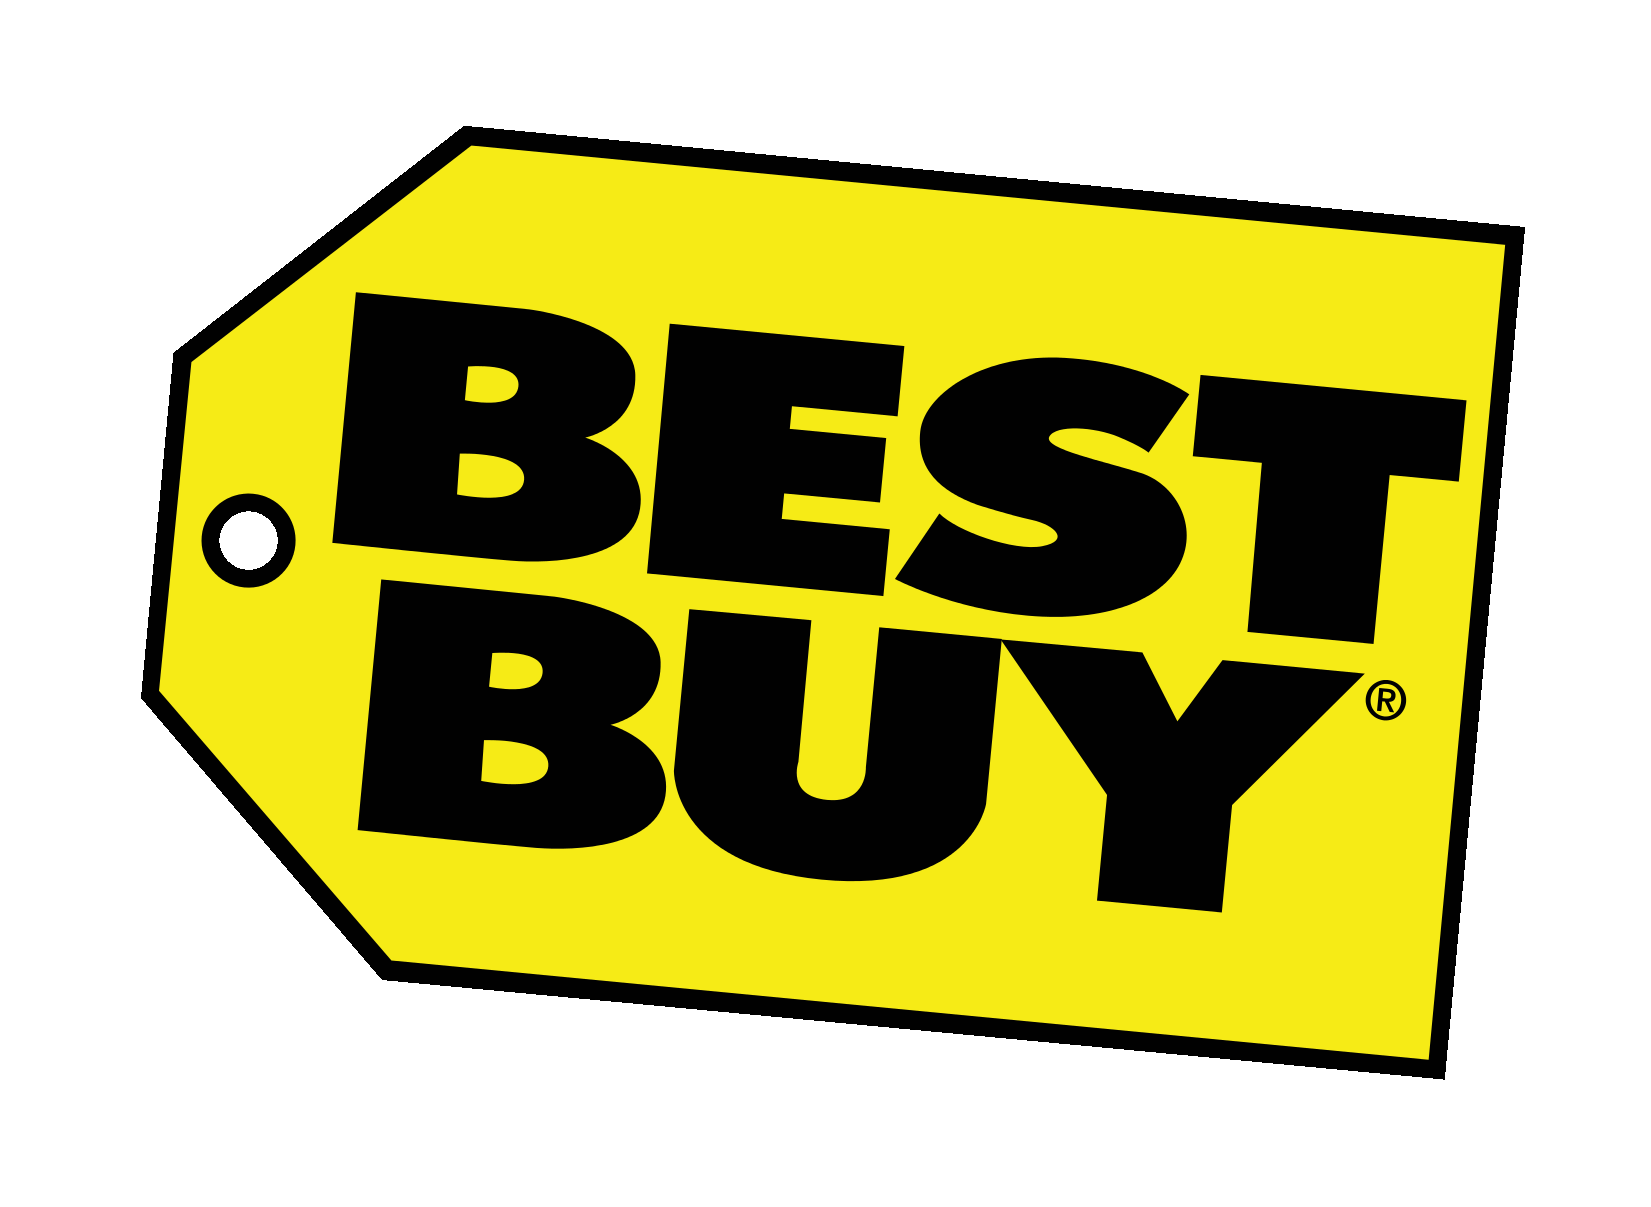 driver delivery service nj princeton brunswick job in paramus at best buy lensa delivery service nj princeton